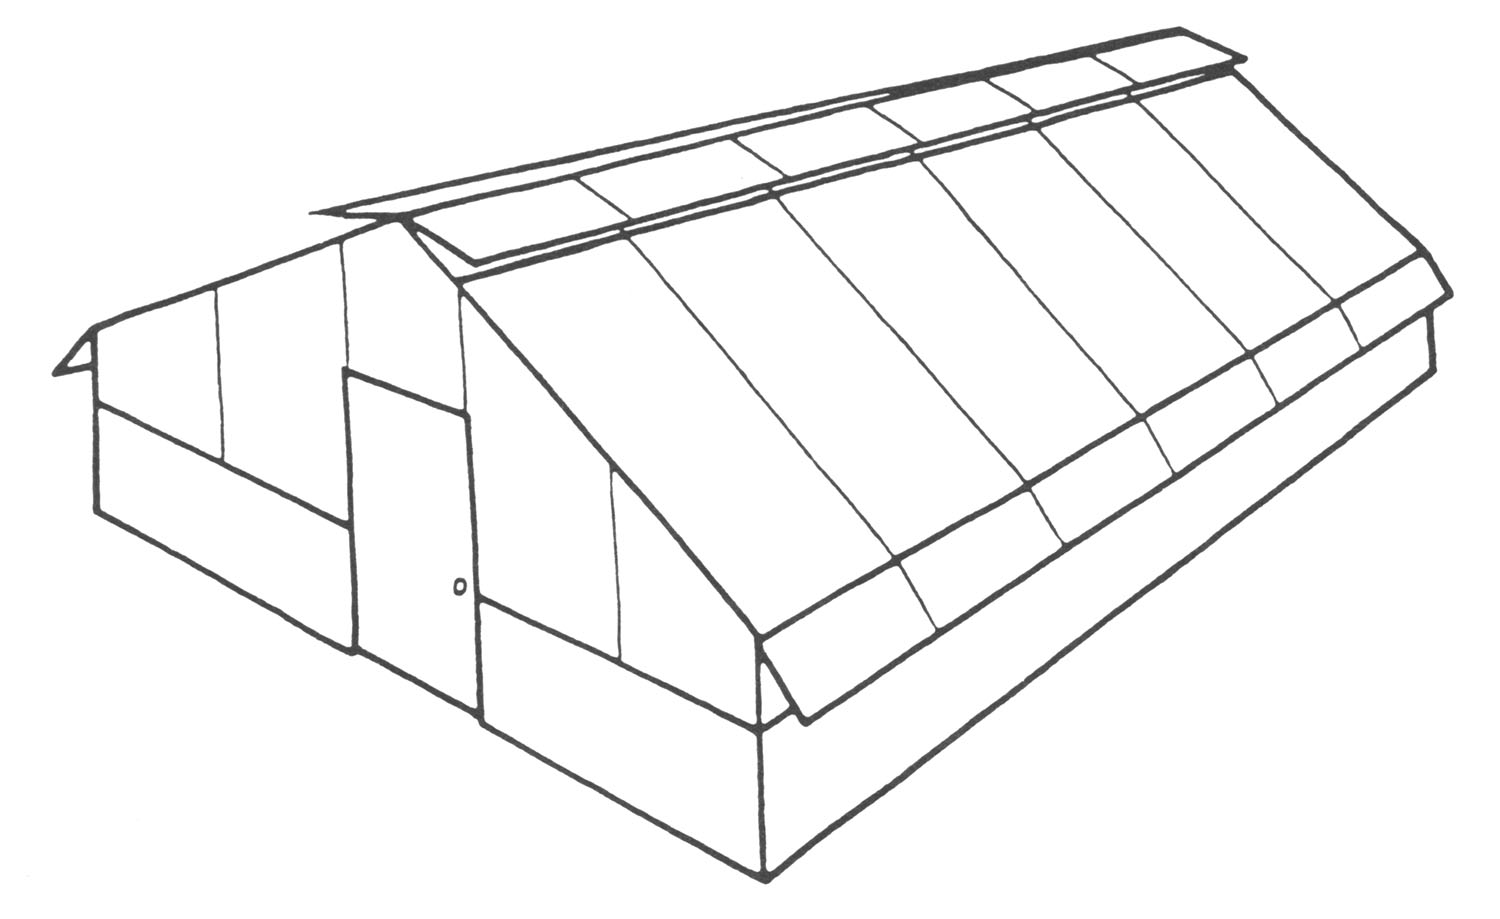 Sketch of a freestanding greenhouse.